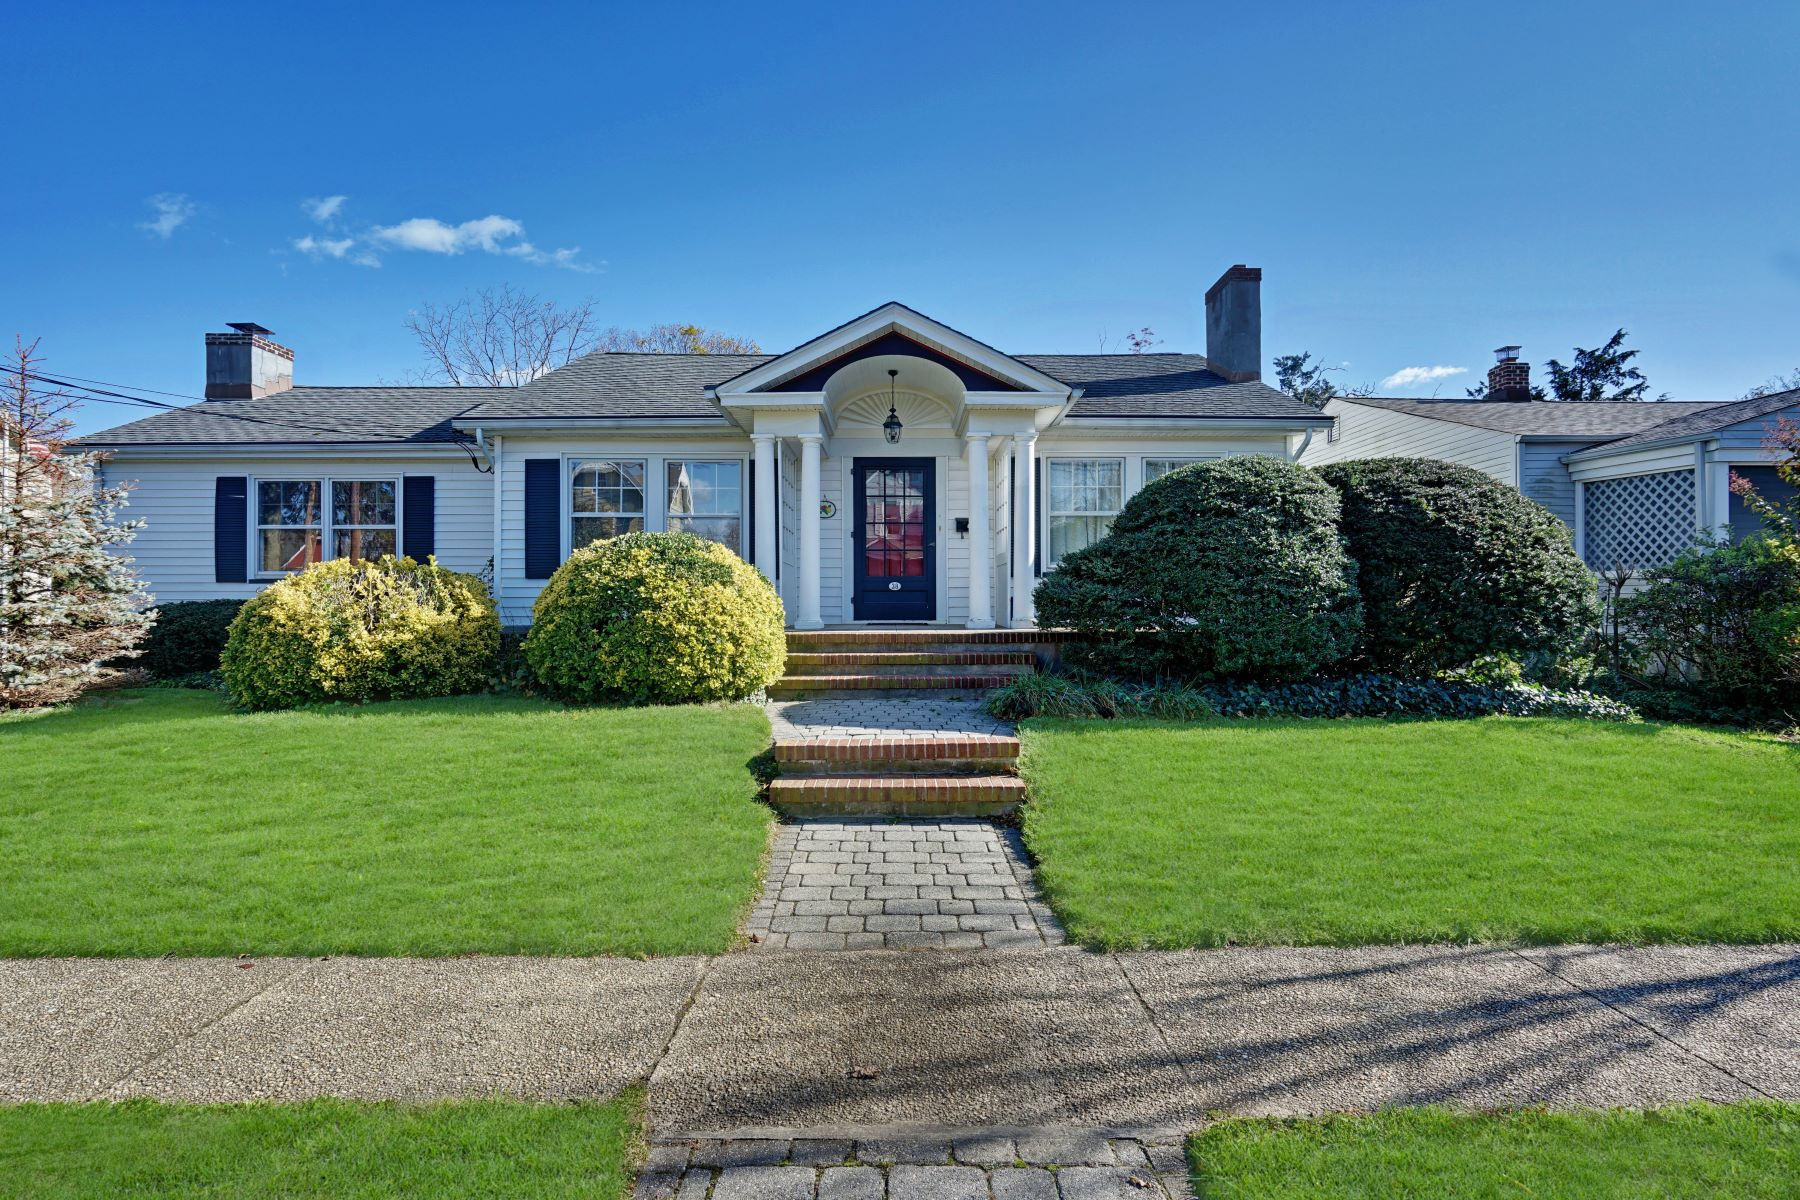 Single Family Homes for Sale at Perfect In-Town Location 38 Pearce Avenue Manasquan, New Jersey 08736 United States